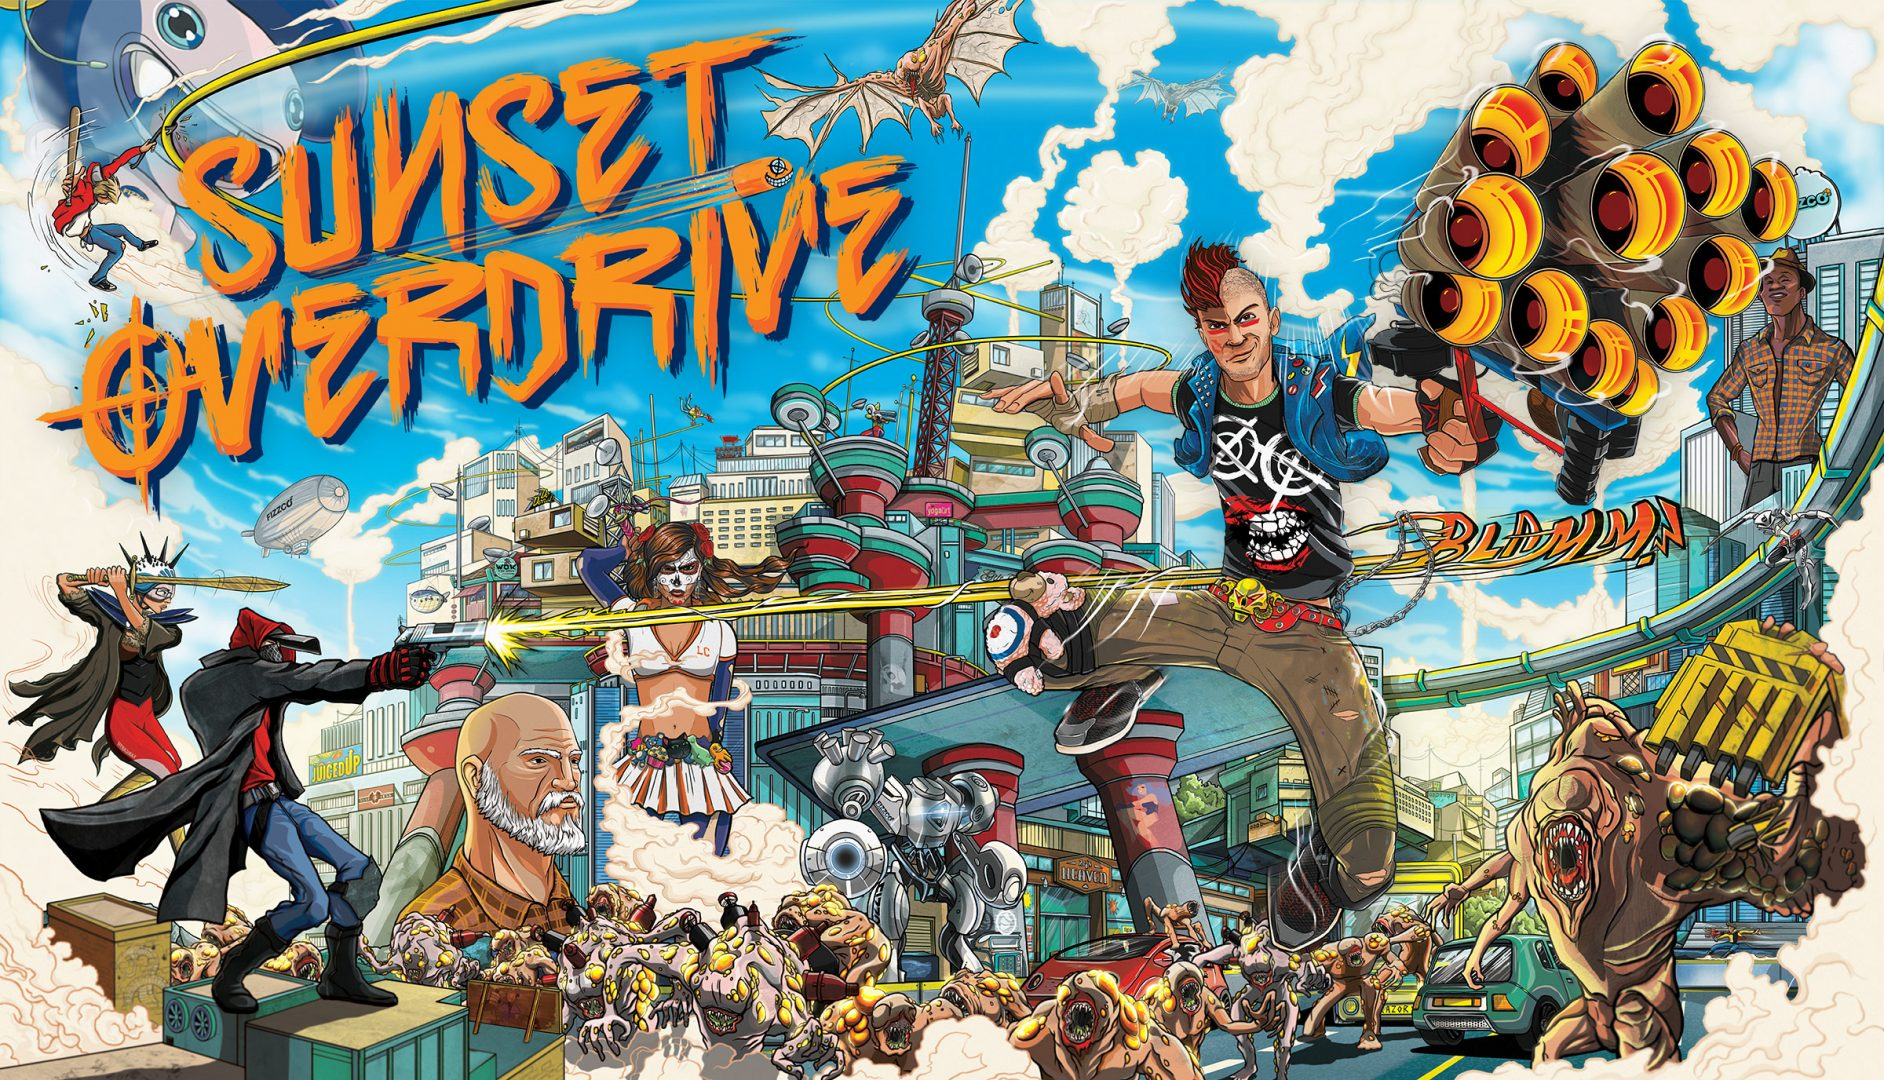 New challenges for Sunset Overdrive challengers!